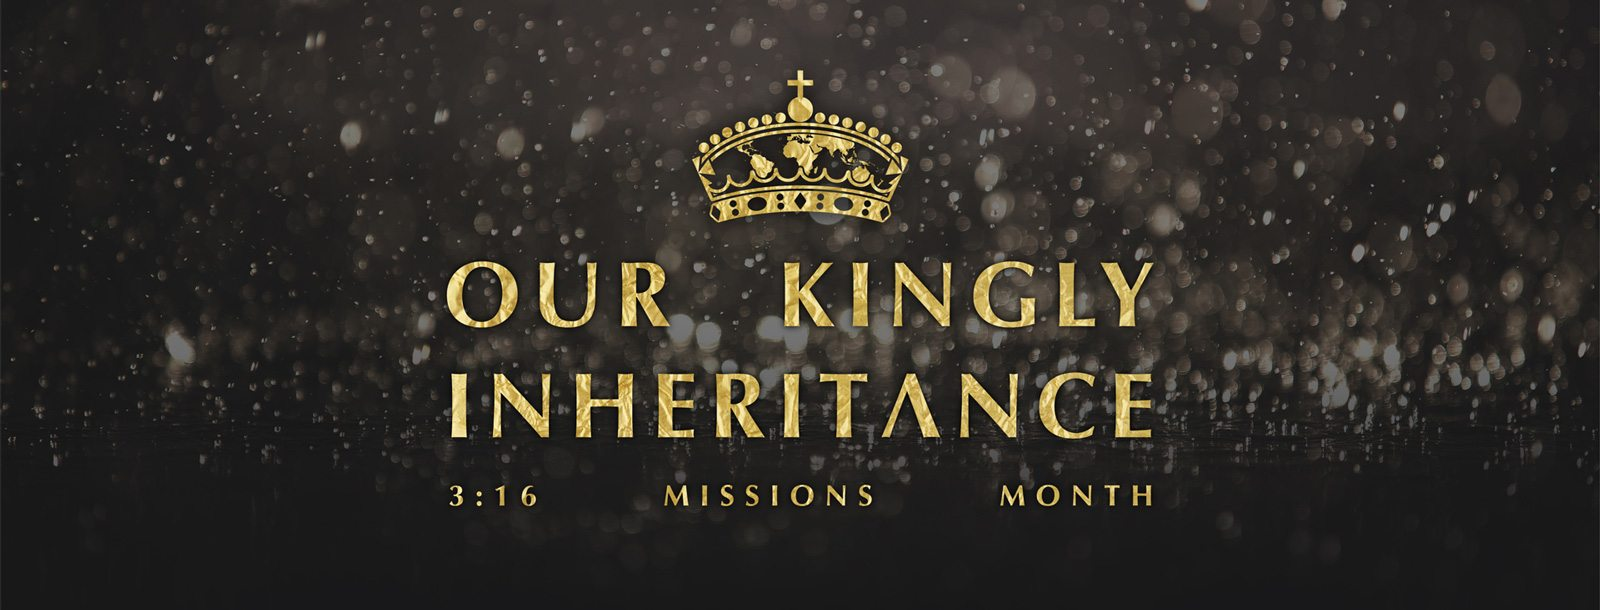 Our Kingly Inheritance: 3:16 Church Missions Month